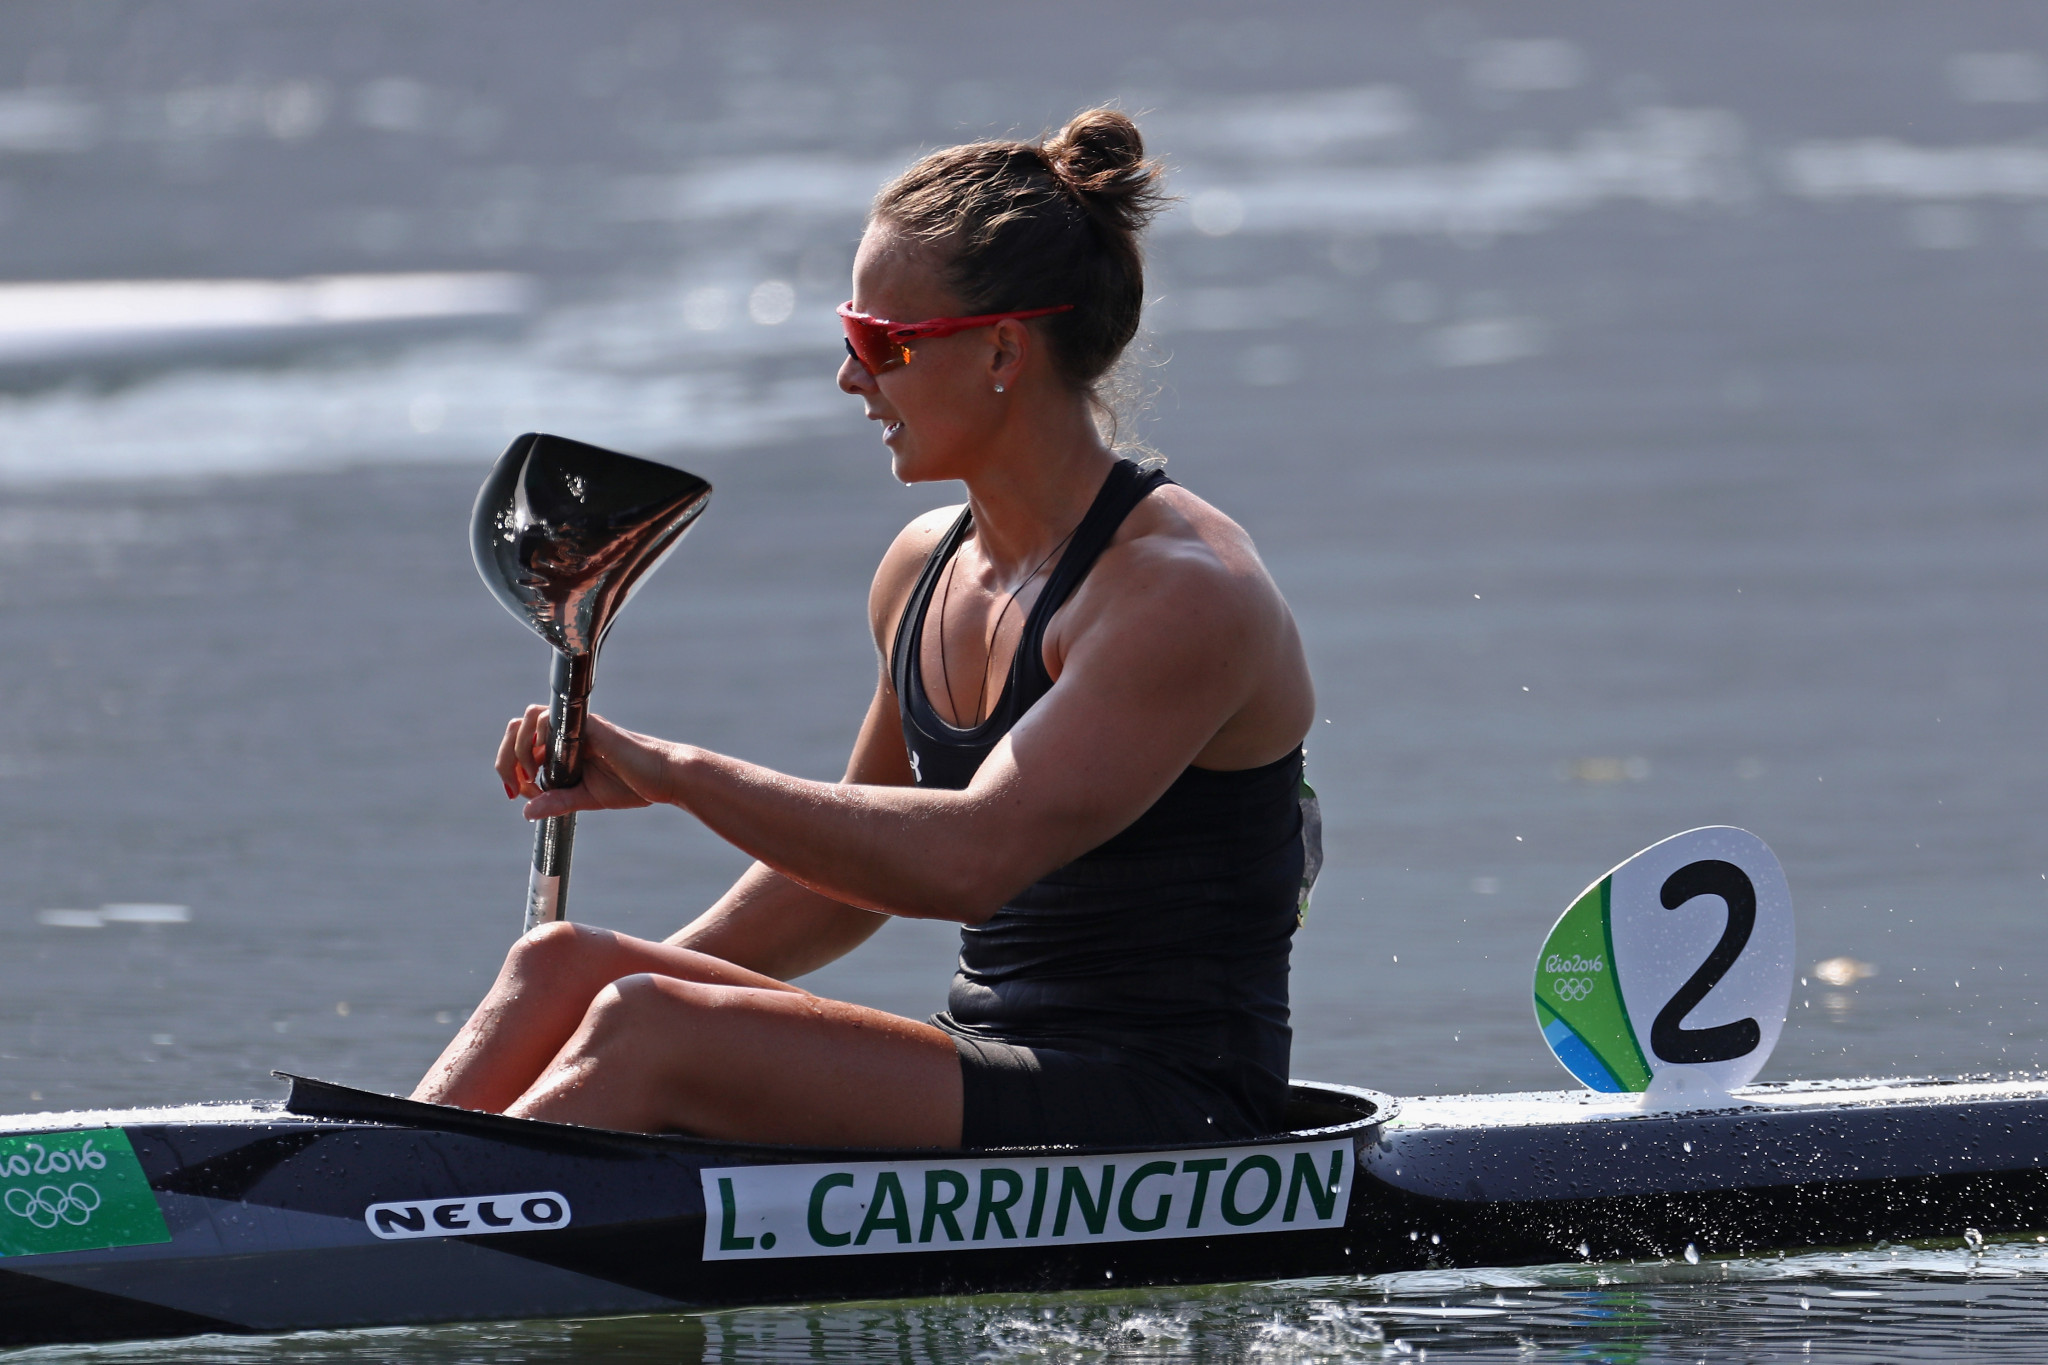 Lisa Carrington is a two-time Olympic champion, having won gold in the K1 200m at London 2012 and Rio 2016 ©Getty Images